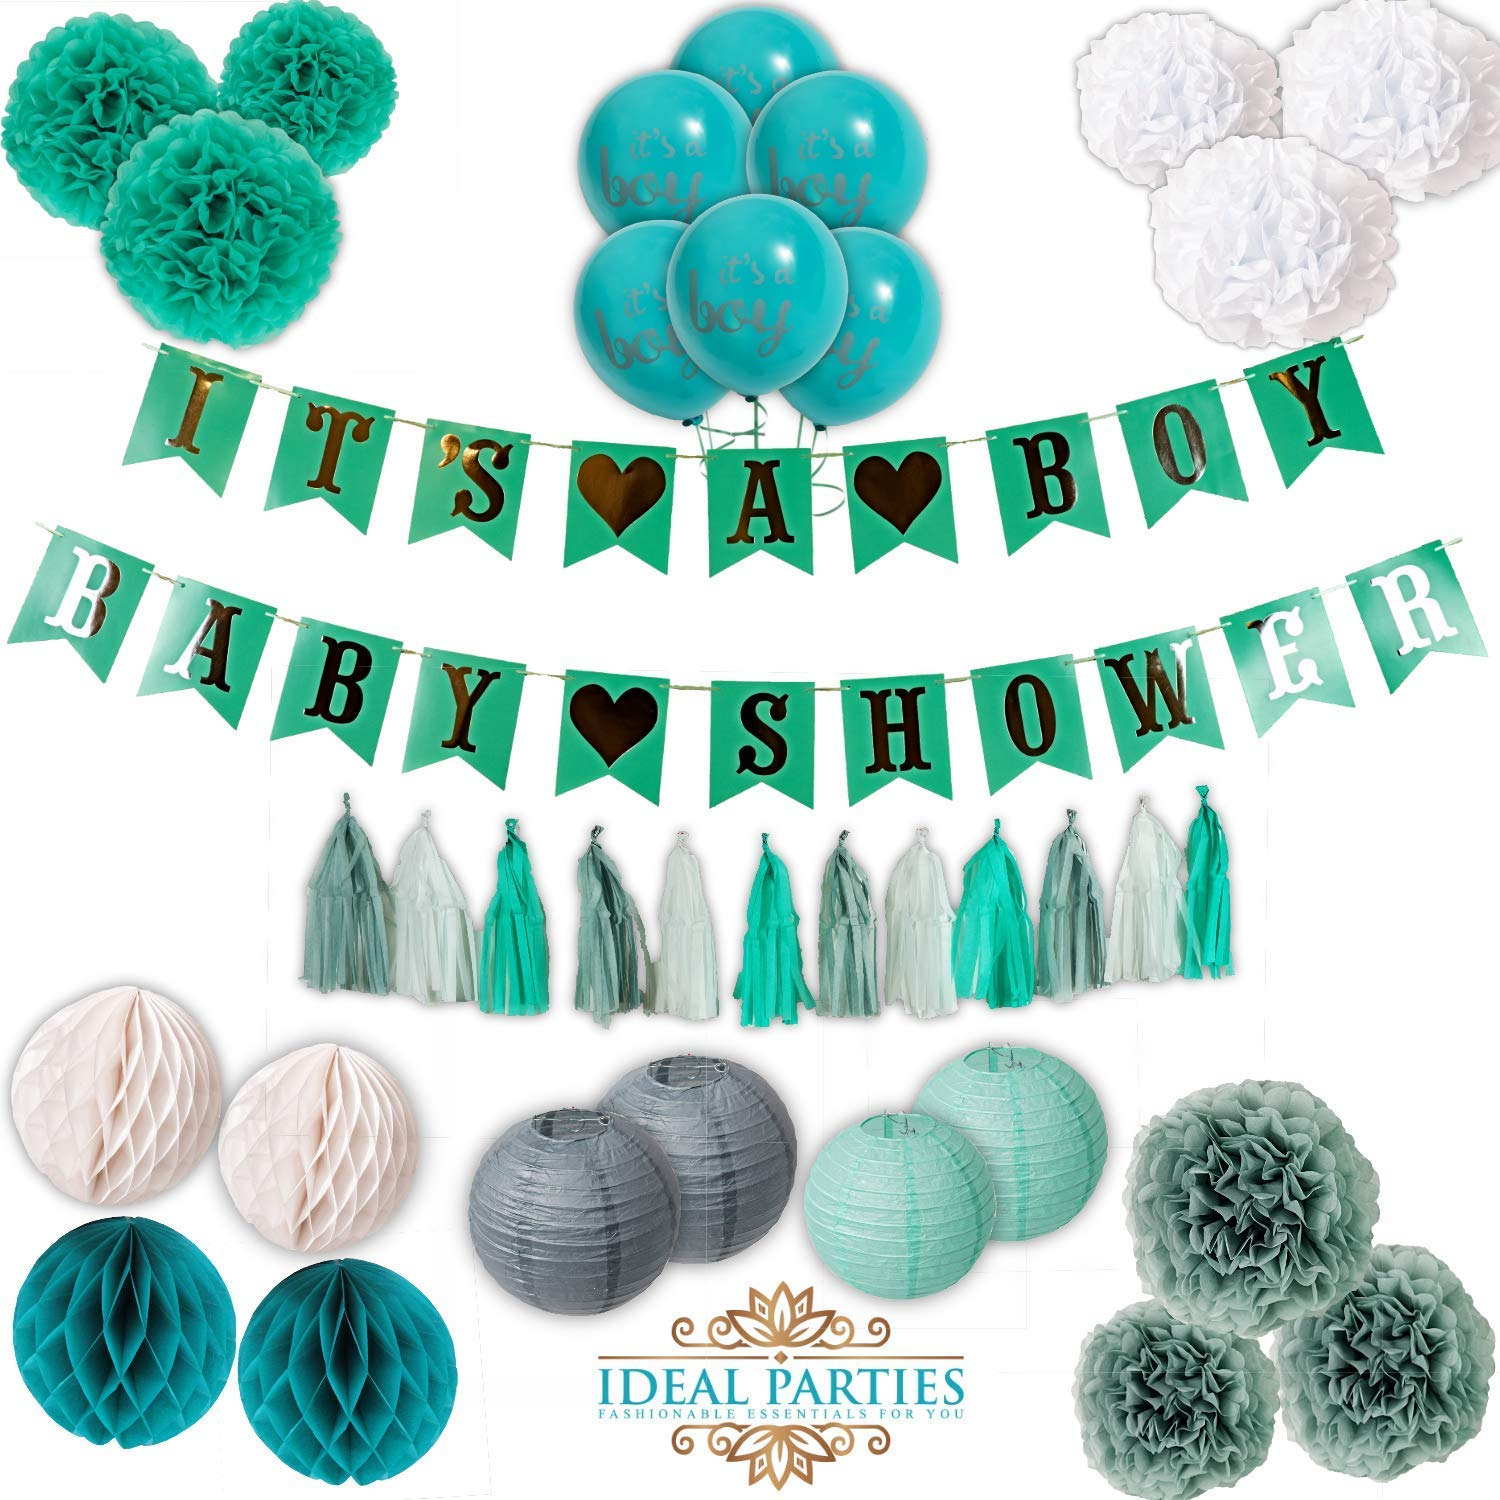 Teal and Grey Baby Shower Decorations for Boy, Easy Set up Flower pom poms, It's a Boy Banners, Balloons, Honey Comb Balls, Lanterns in Teal/Grey/Silver/White Party Unique Baby Shower Set!!